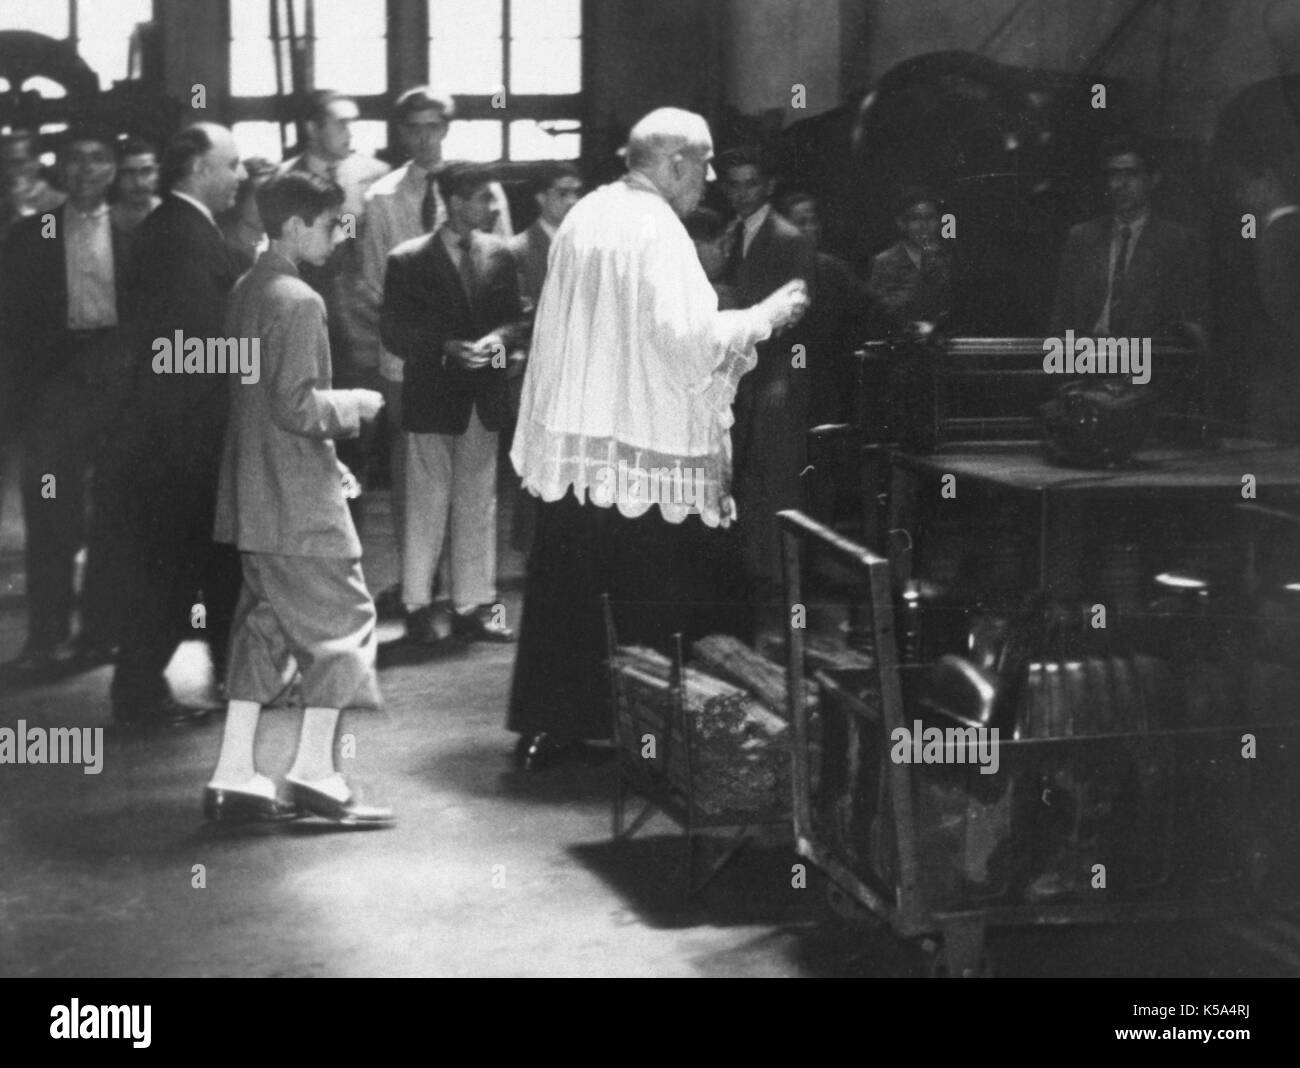 Spain, decade of the fifty years. Traditional blessing ceremony of one factory. Barcelona, Catalonia, Spain. - Stock Image